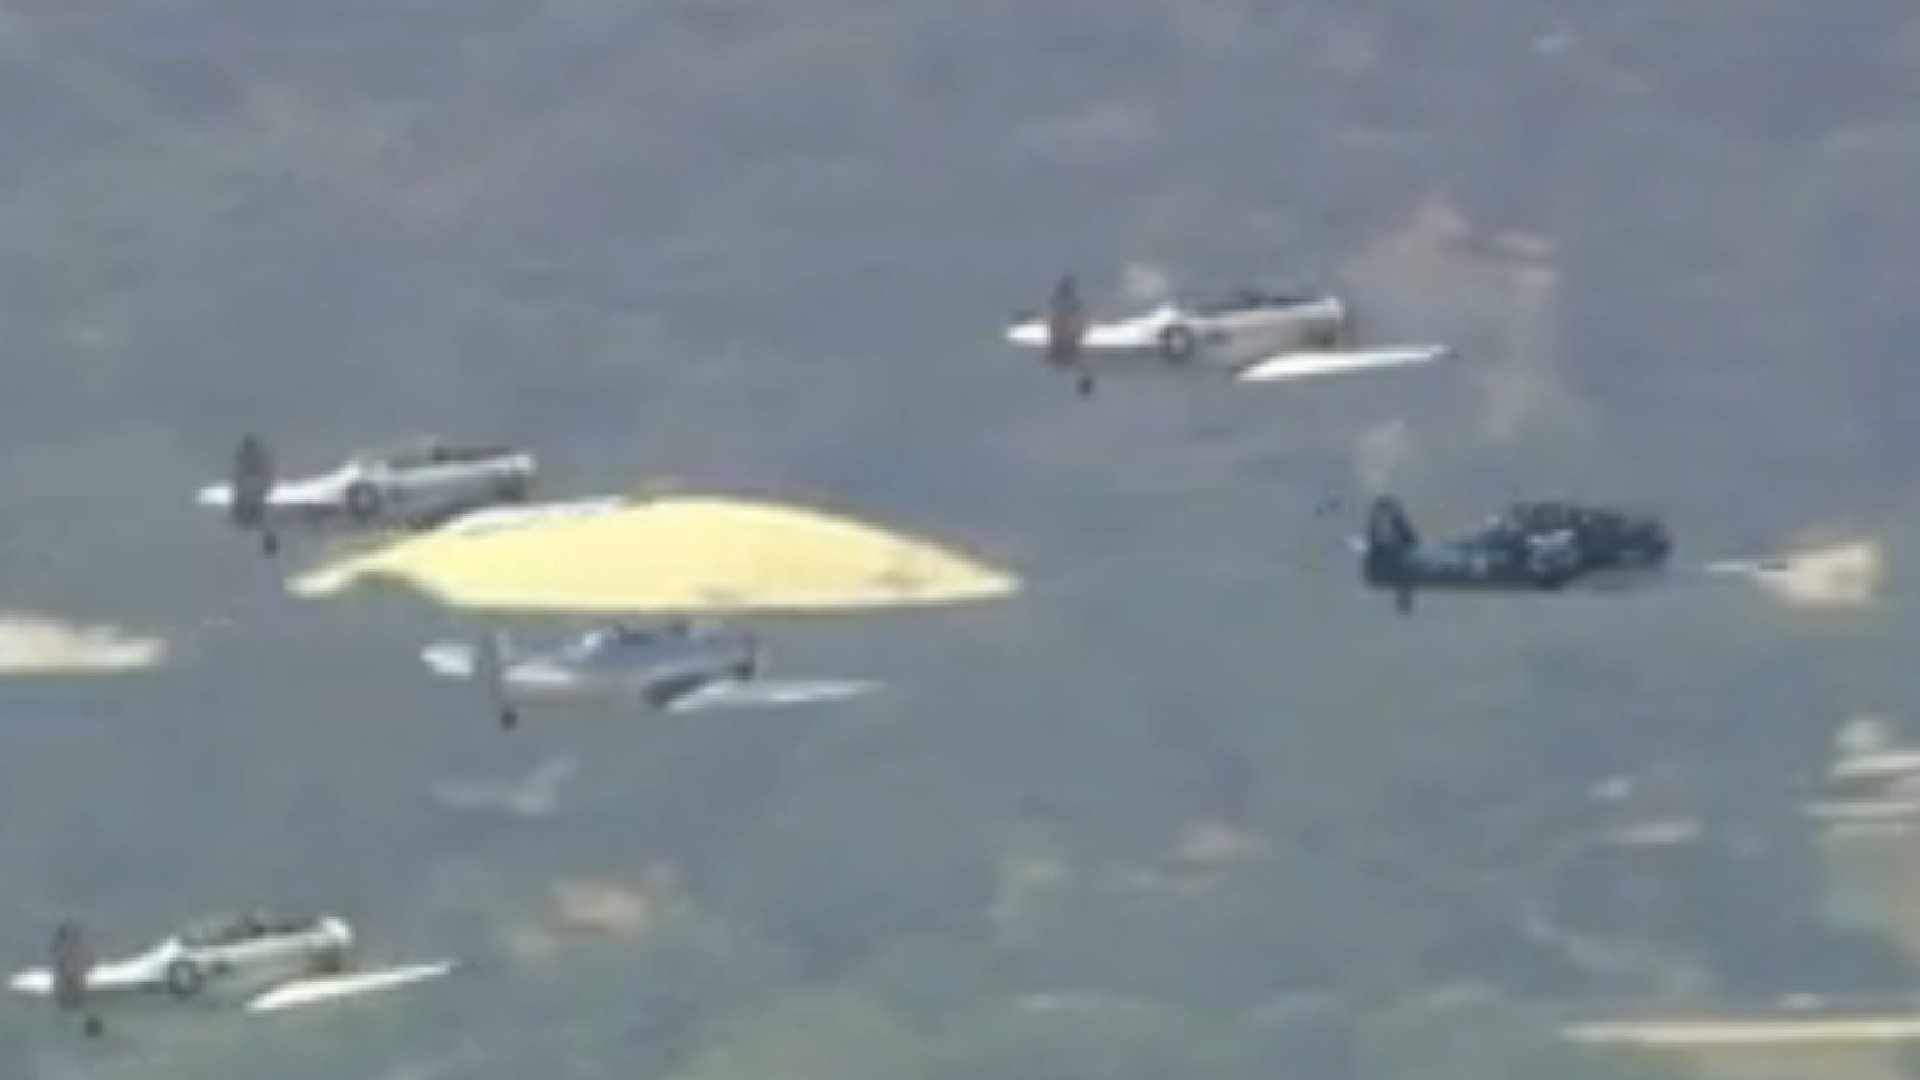 Vintage war planes fly over Southern California on May 25, 2020. (KTLA)